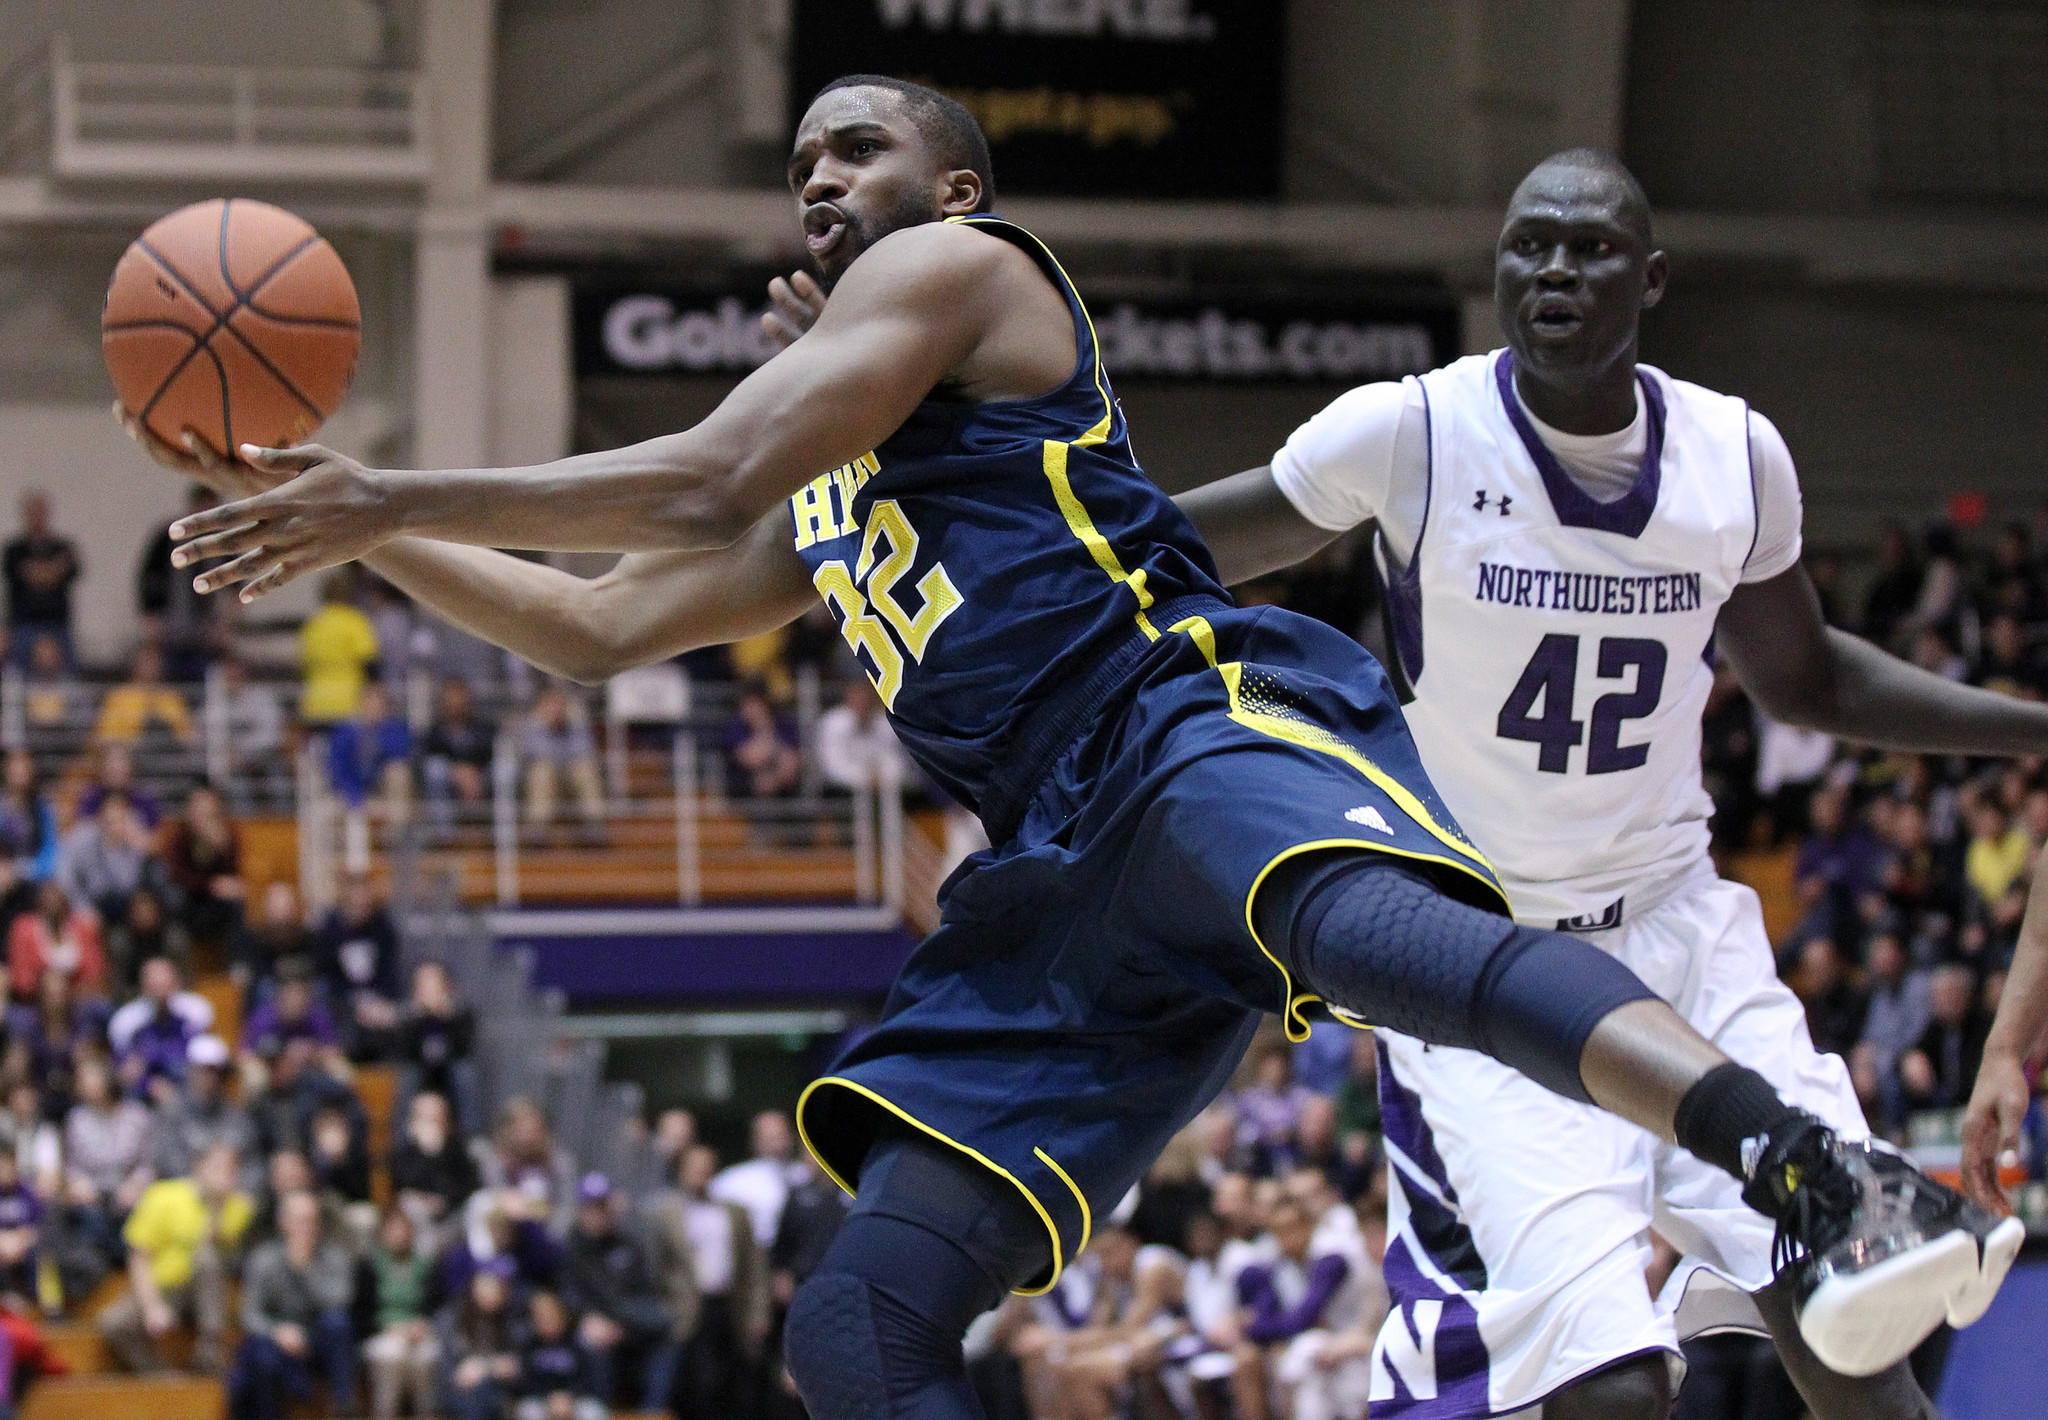 Michigan's Corey Person (32) is fouled by Northwestern's Chier Ajou (42) in the second period at Welsh-Ryan Arena.